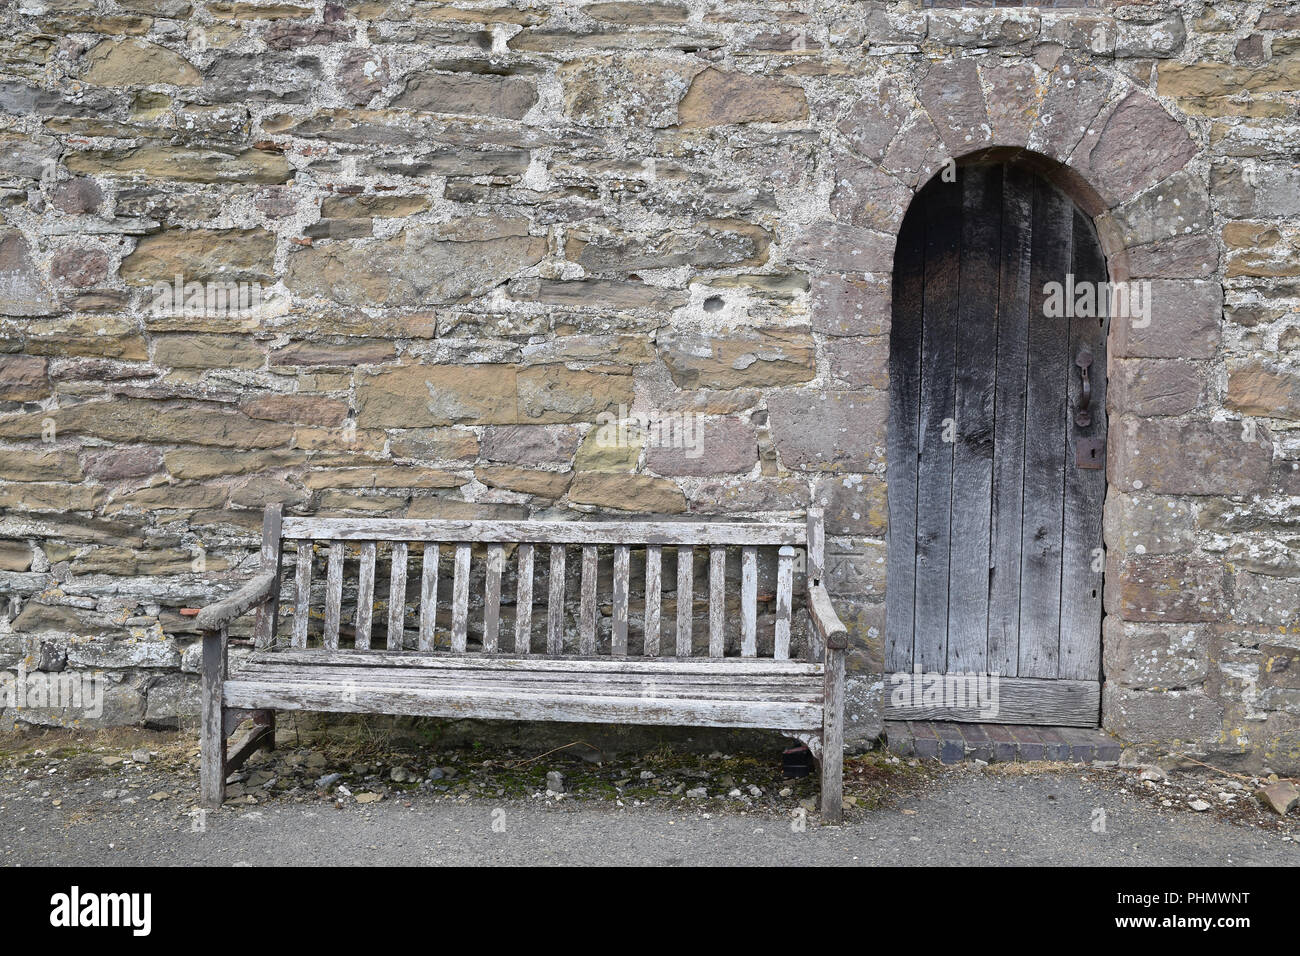 Weathered old bench against the stonewall of a church with an arched wooden door. Relaxing spot to sit contemplation - Stock Image